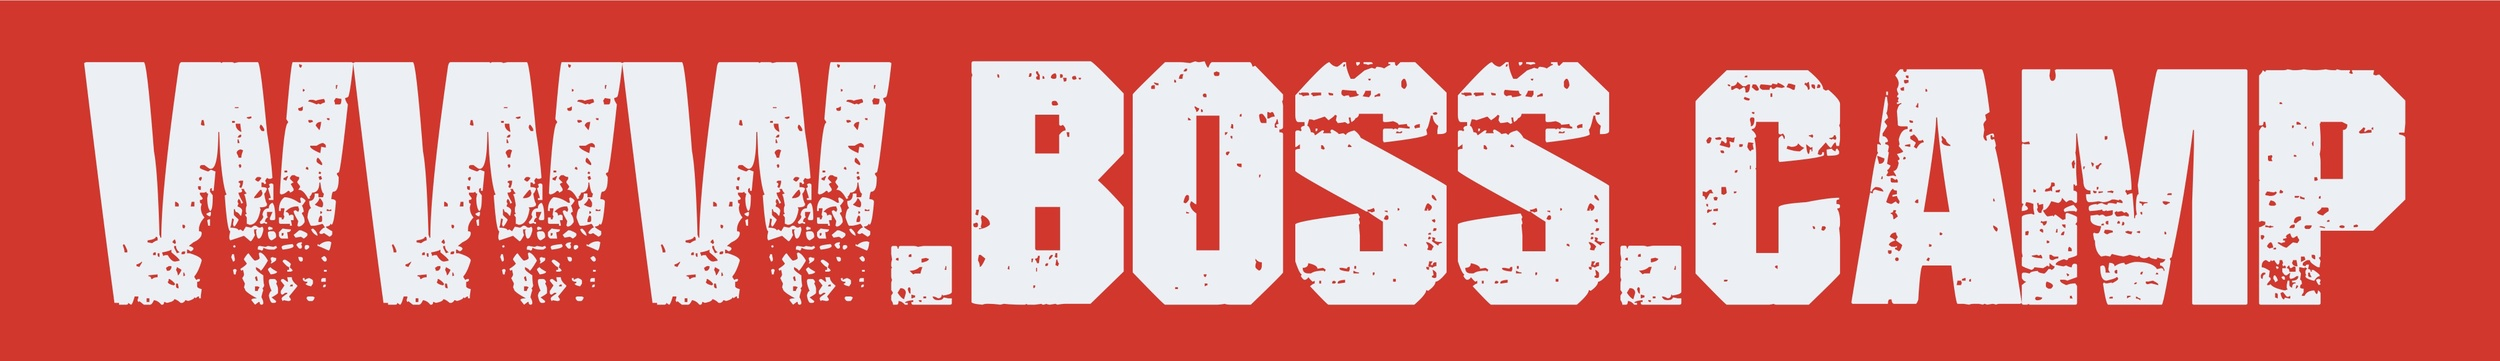 If you're a new manager find out how to make work work in www.boss.camp Jpeg